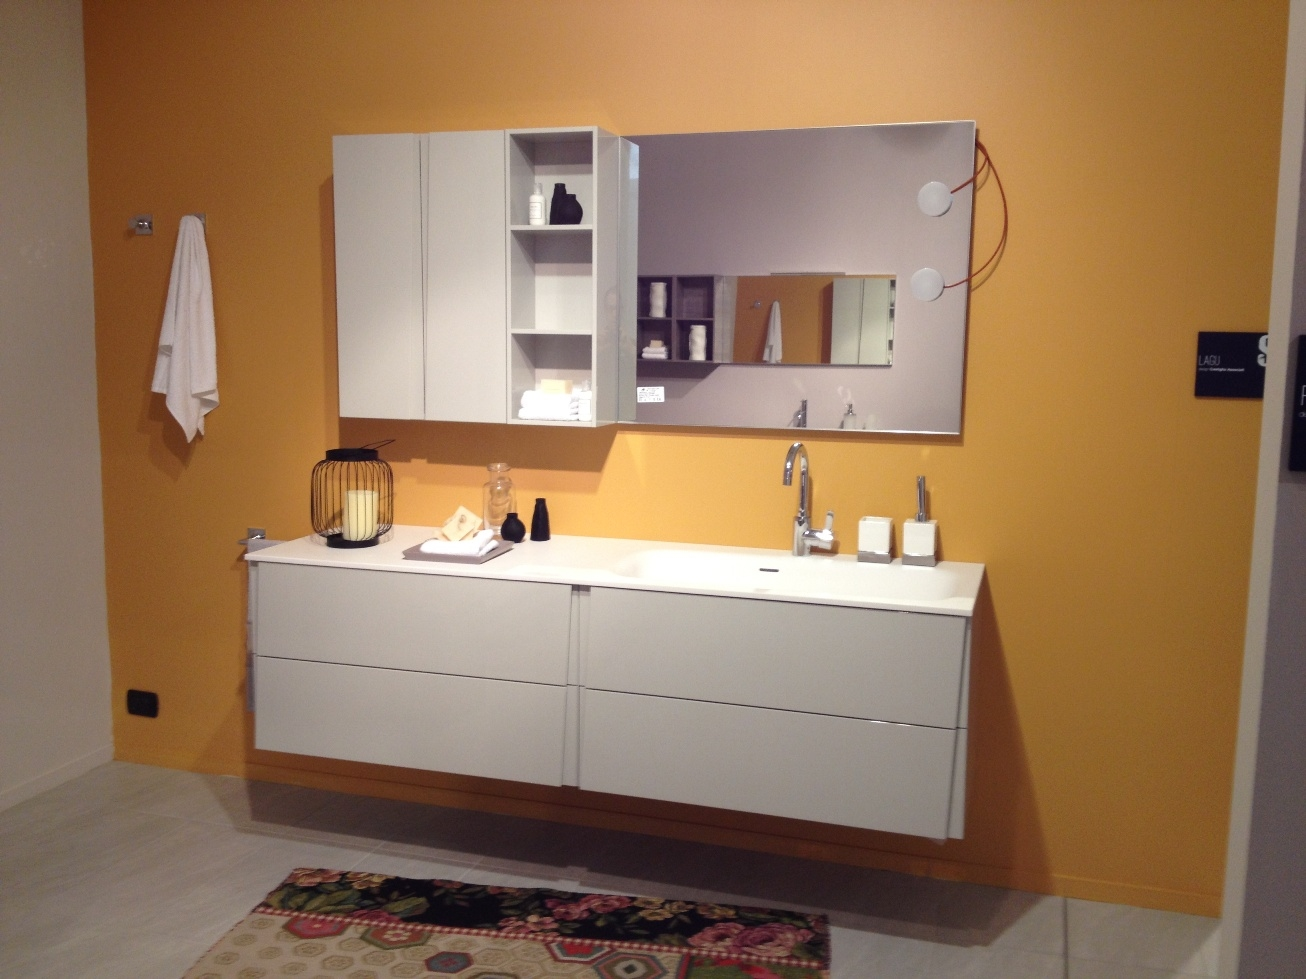 Emejing Mobile Bagno Outlet Contemporary - Skilifts.us - skilifts.us